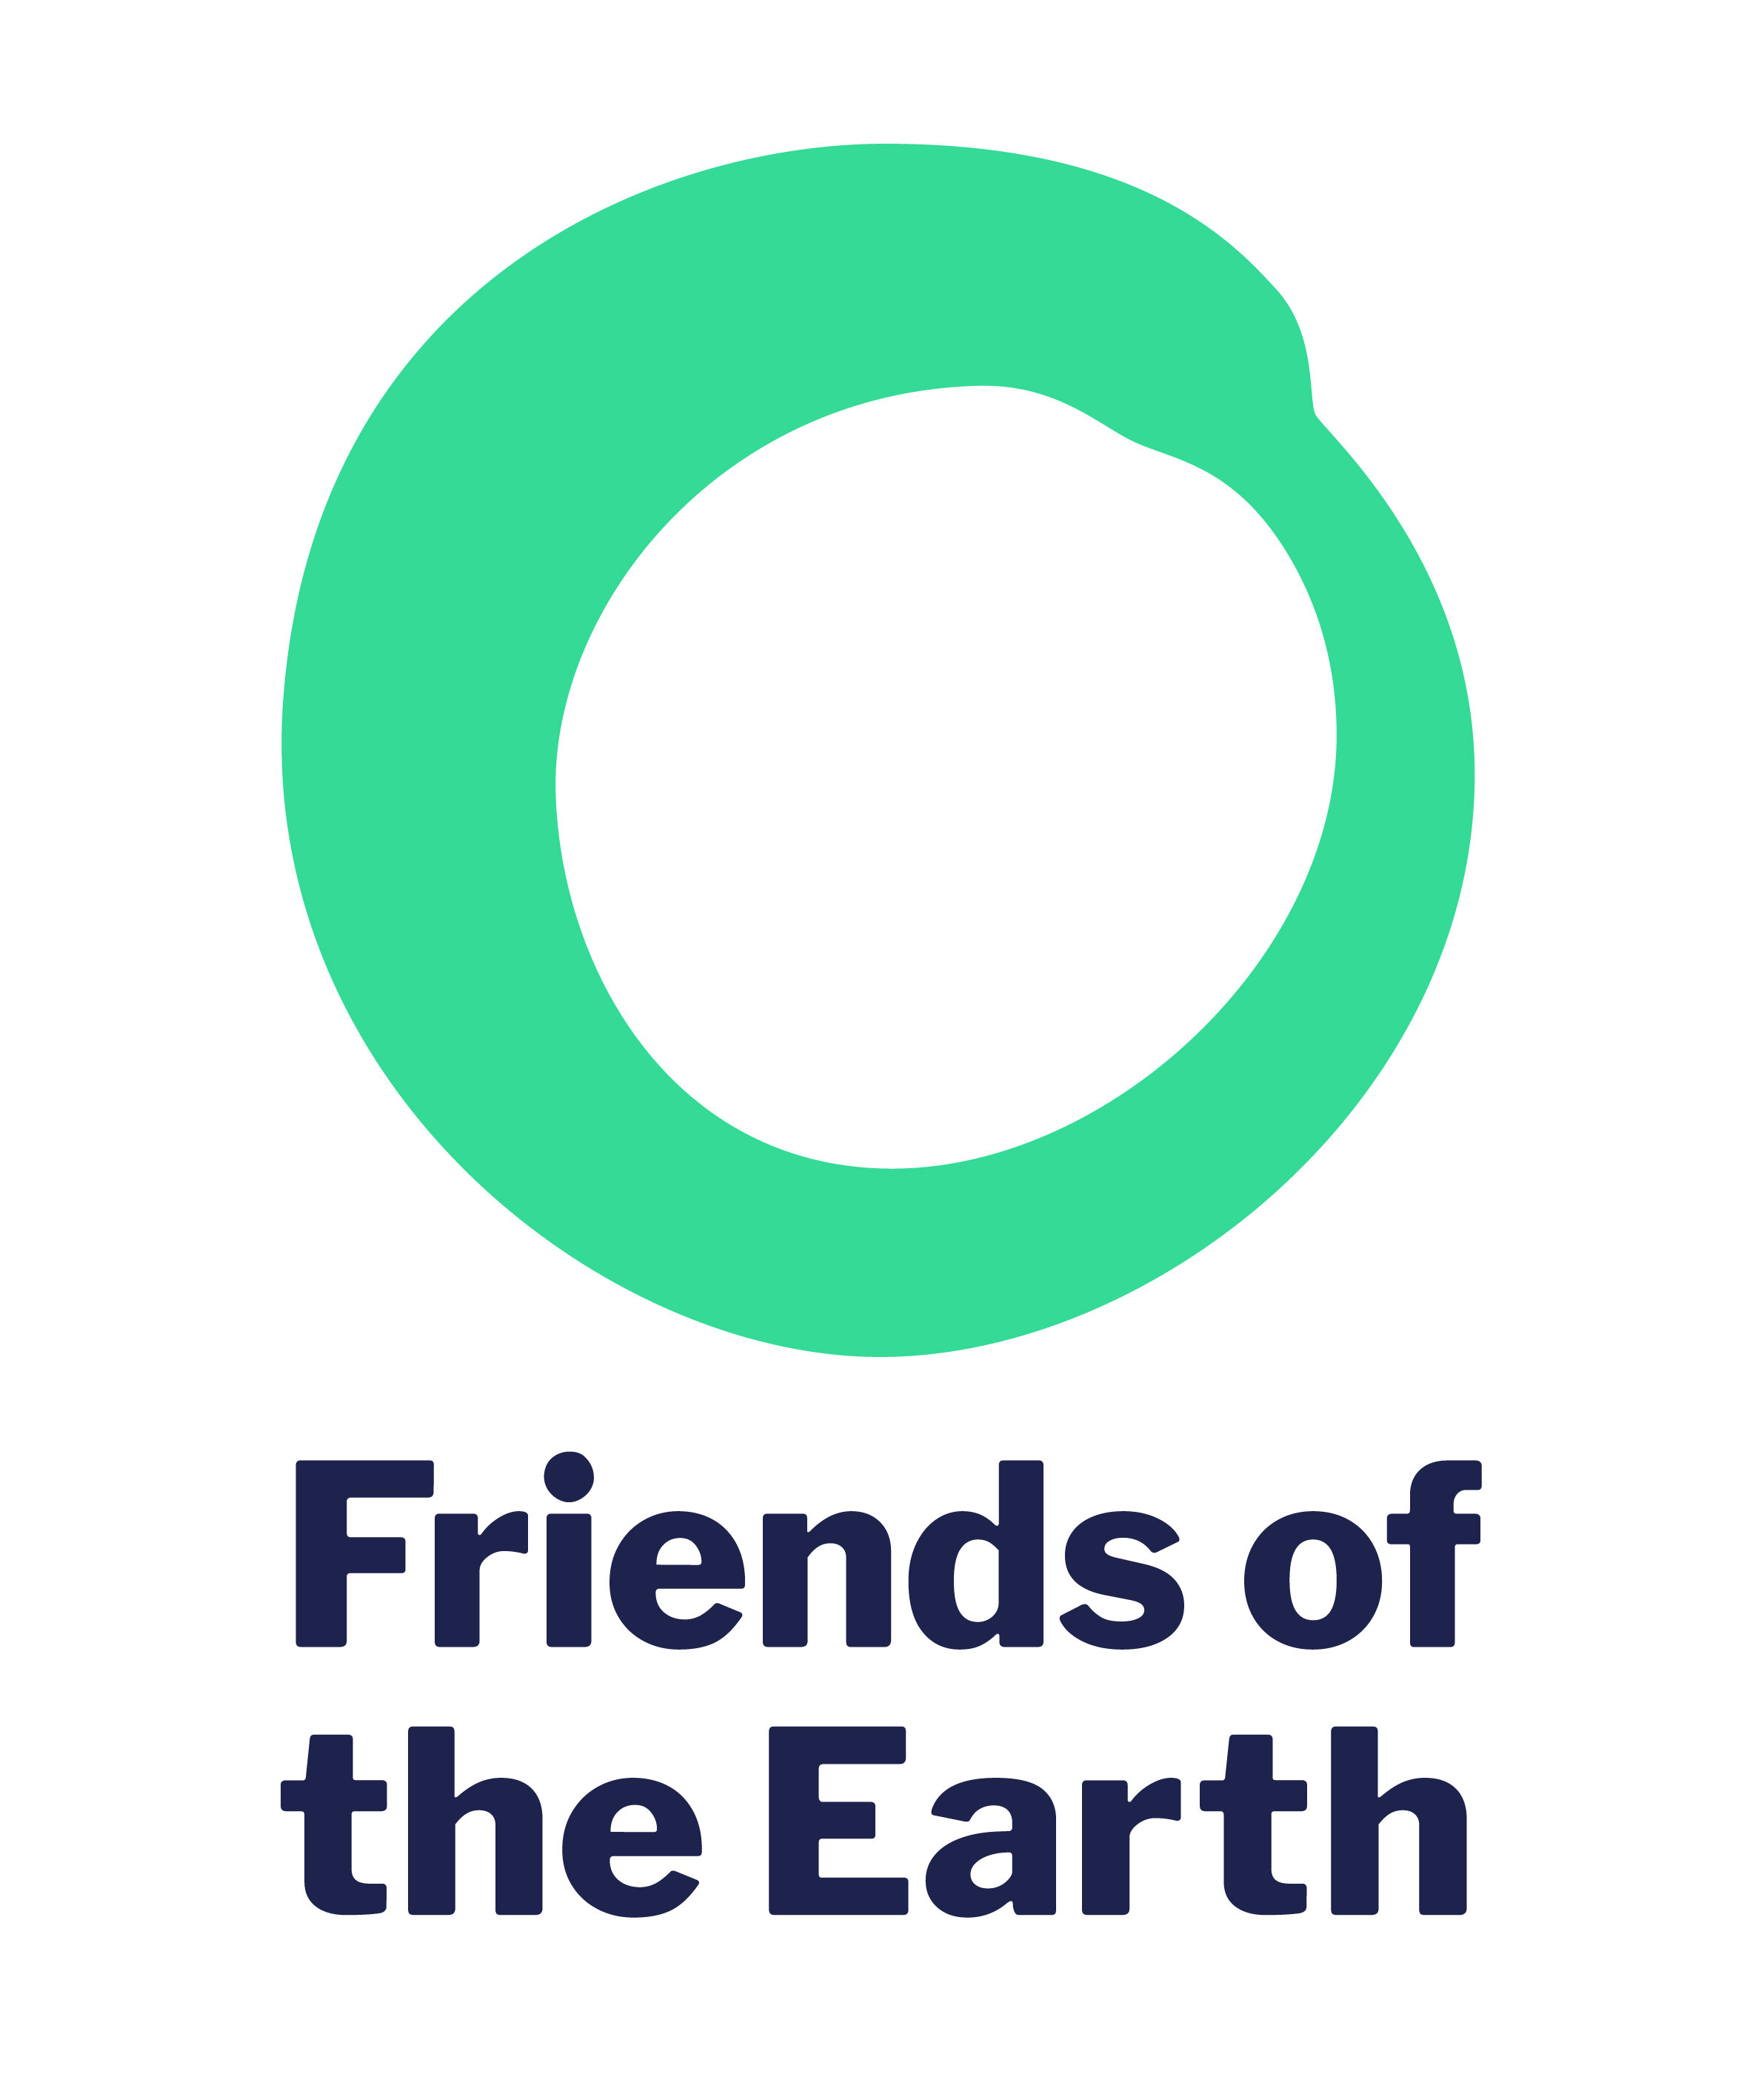 Friends of the Earth.jpg